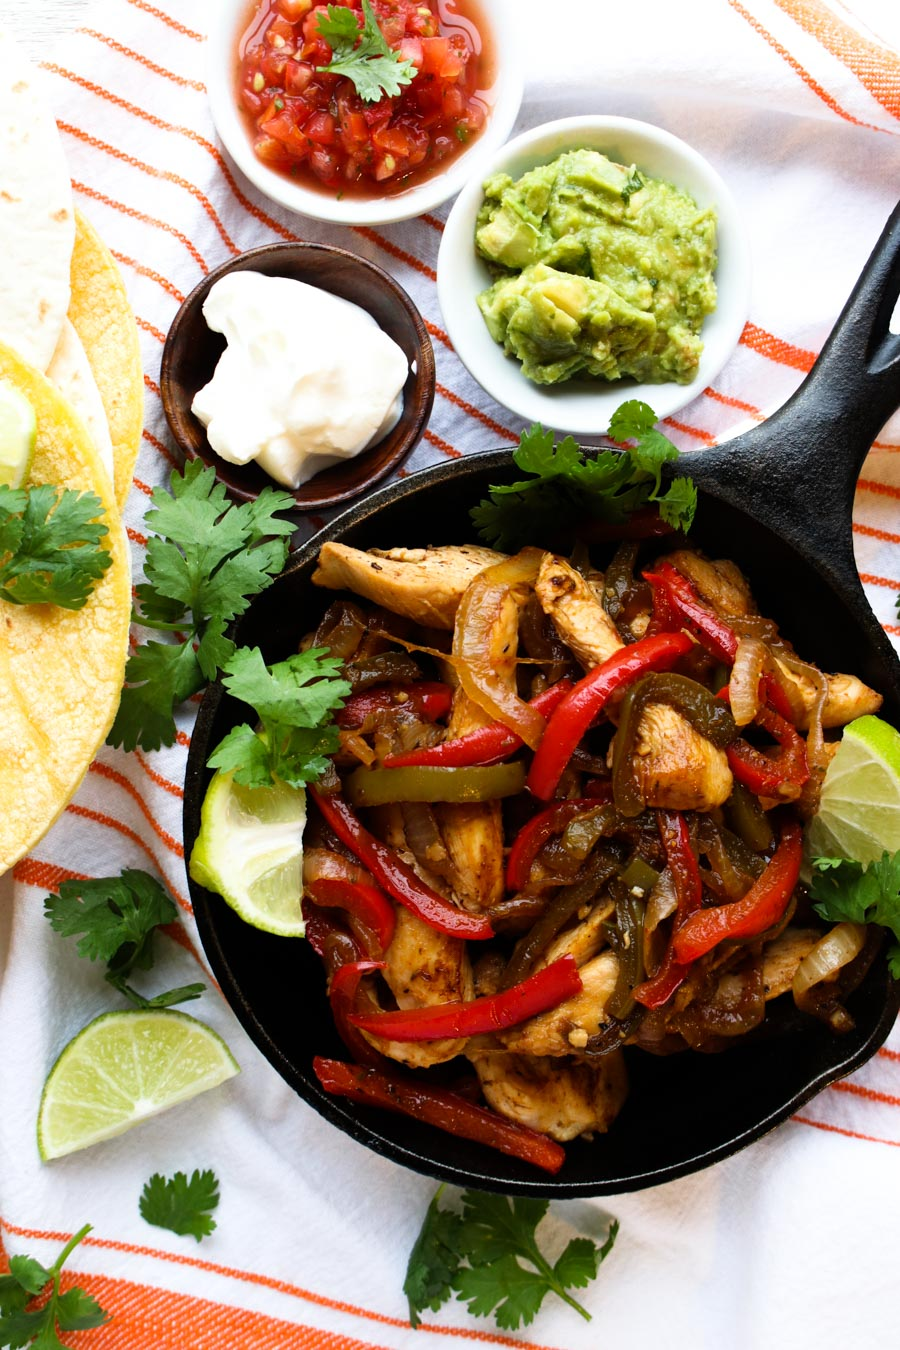 TEQUILA CHICKEN FAJITAS IN SKILLET